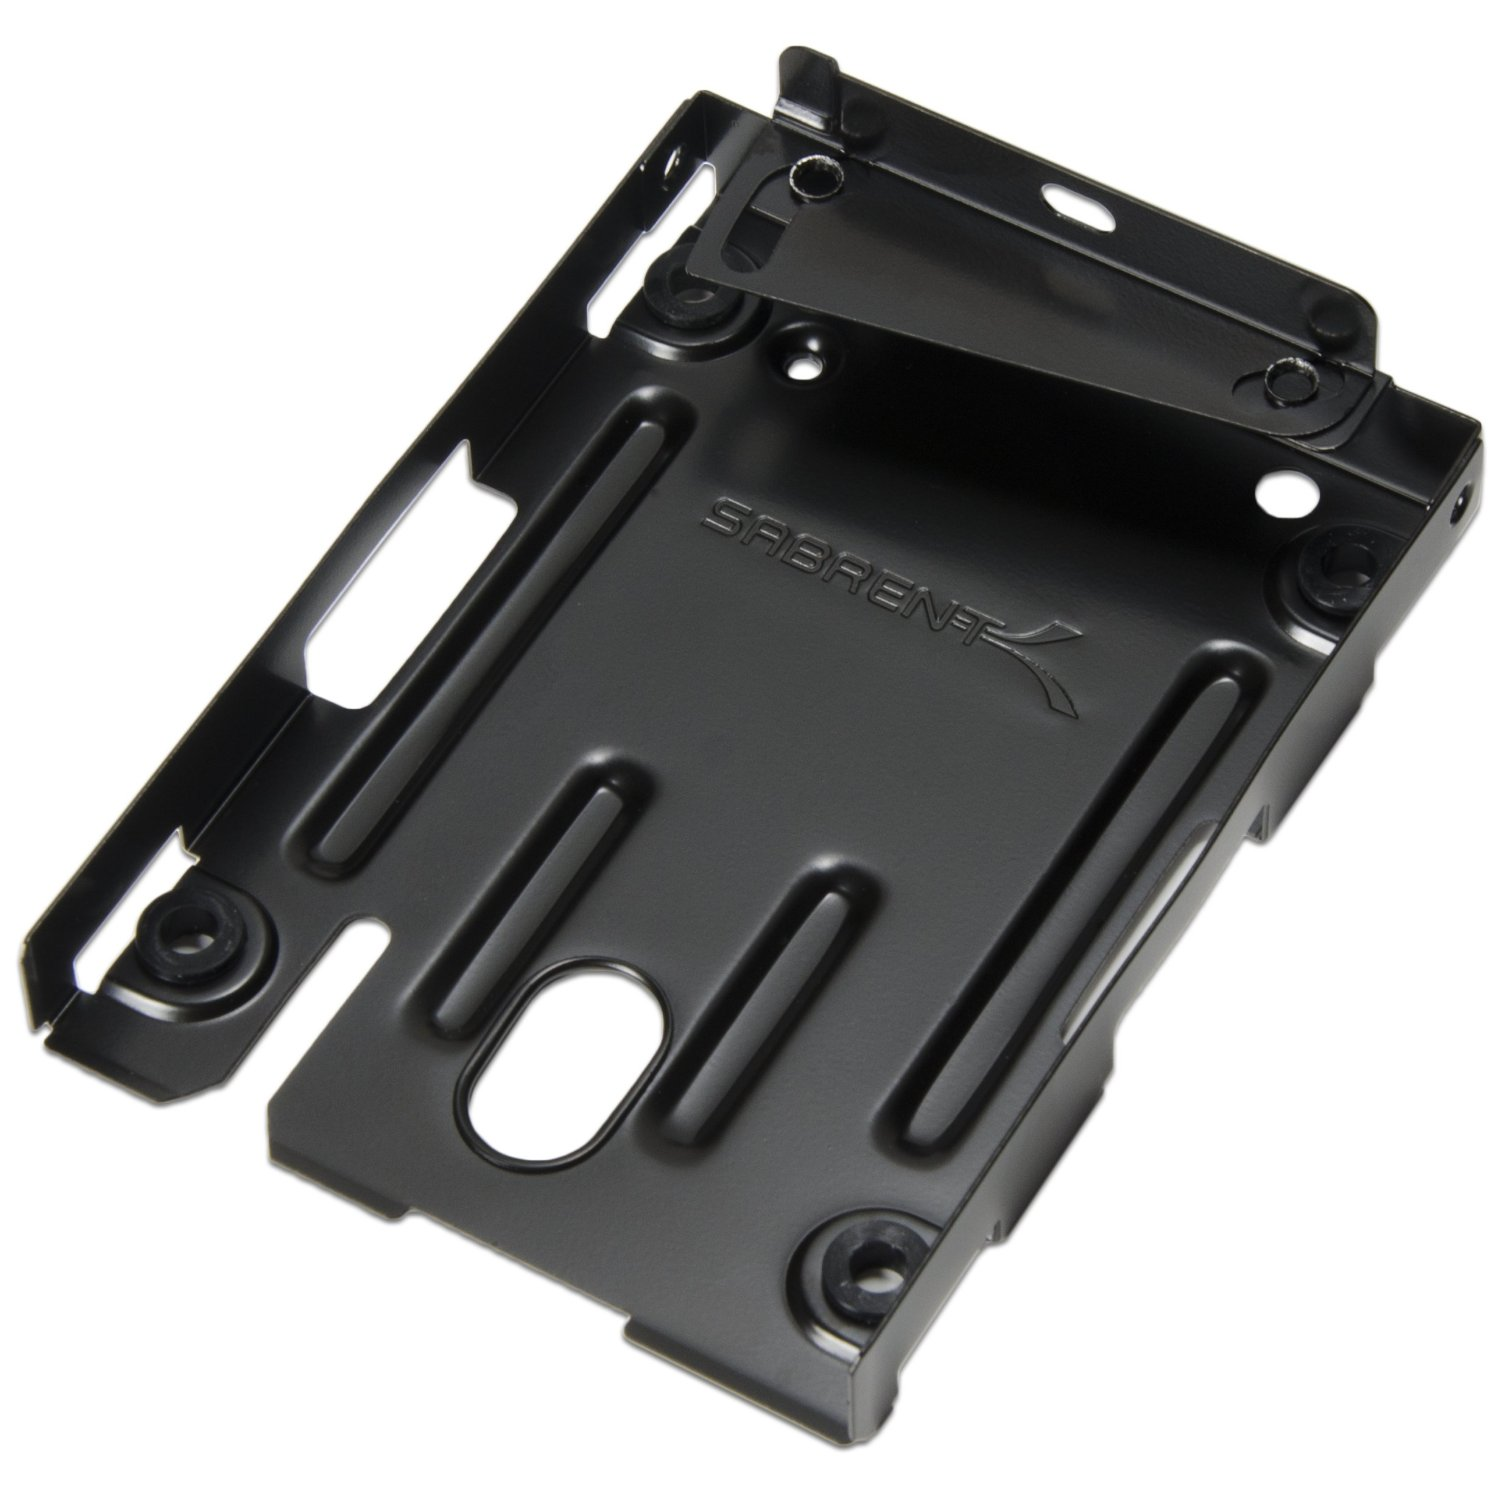 Sabrent BK-HDPS CECH-400X Series Hard Disk Drive Mounting Bracket for PS3 System